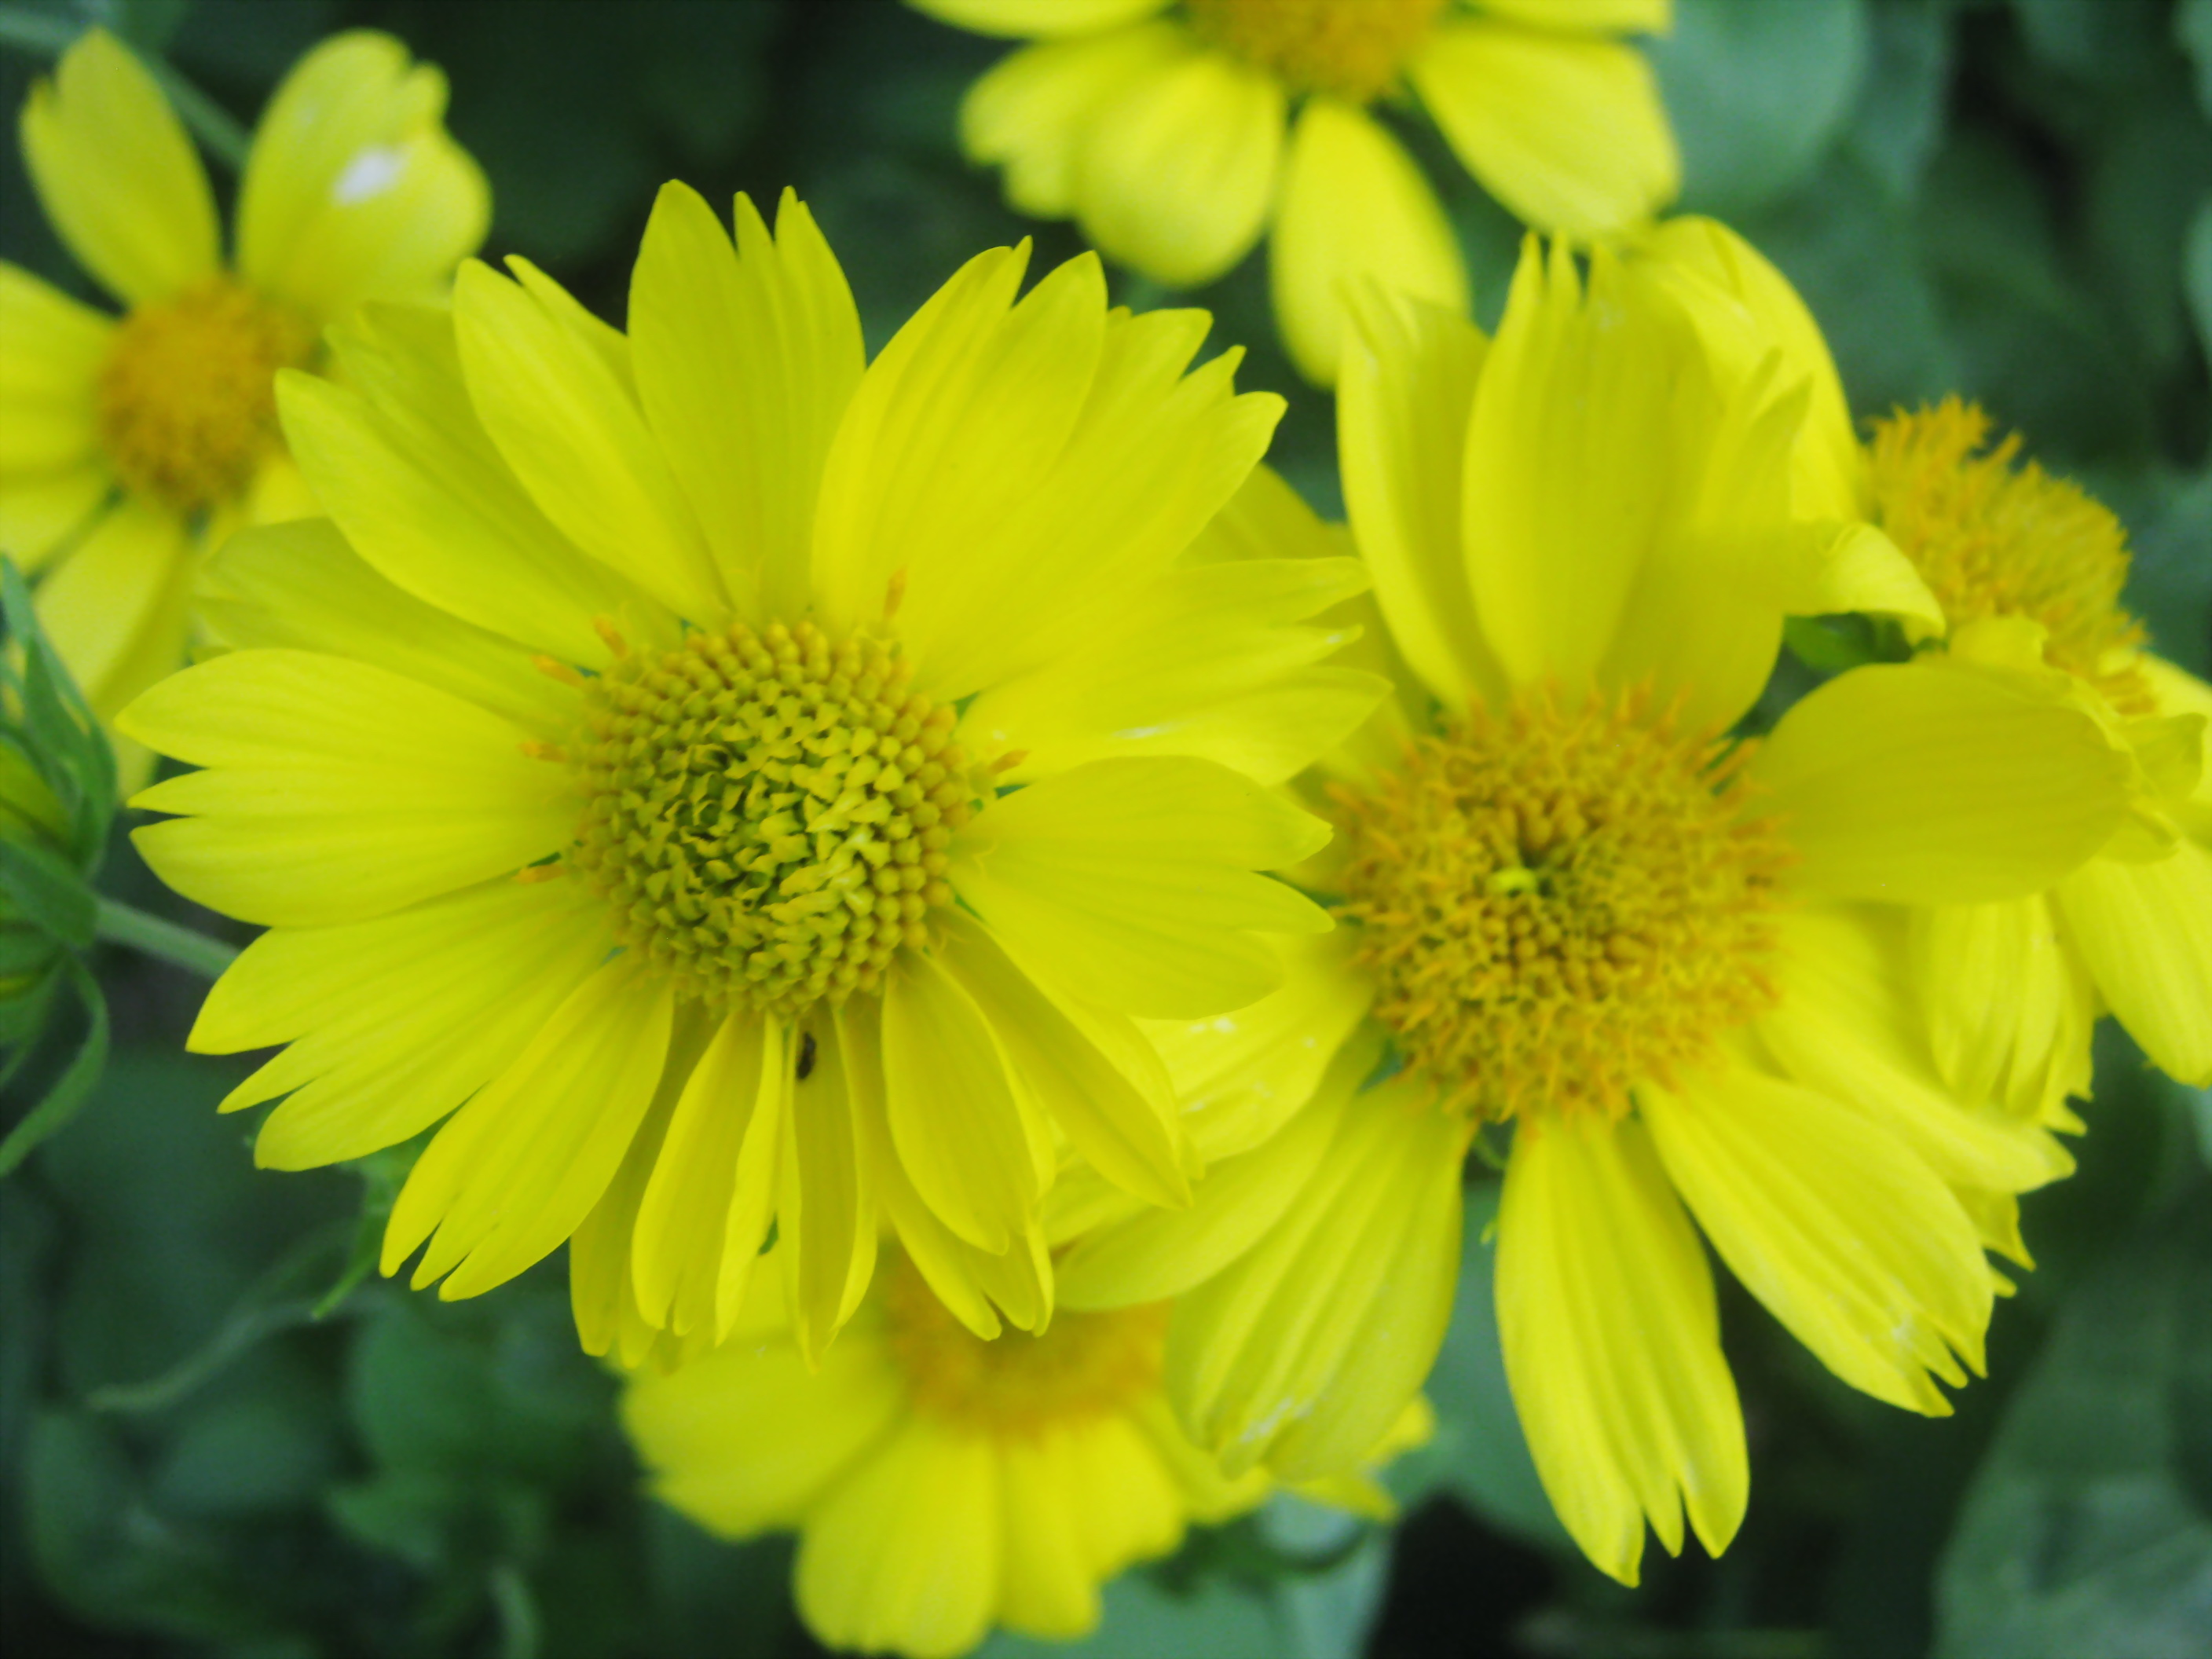 Filebeautiful yellow flowers of ukraineg wikimedia commons filebeautiful yellow flowers of ukraineg izmirmasajfo